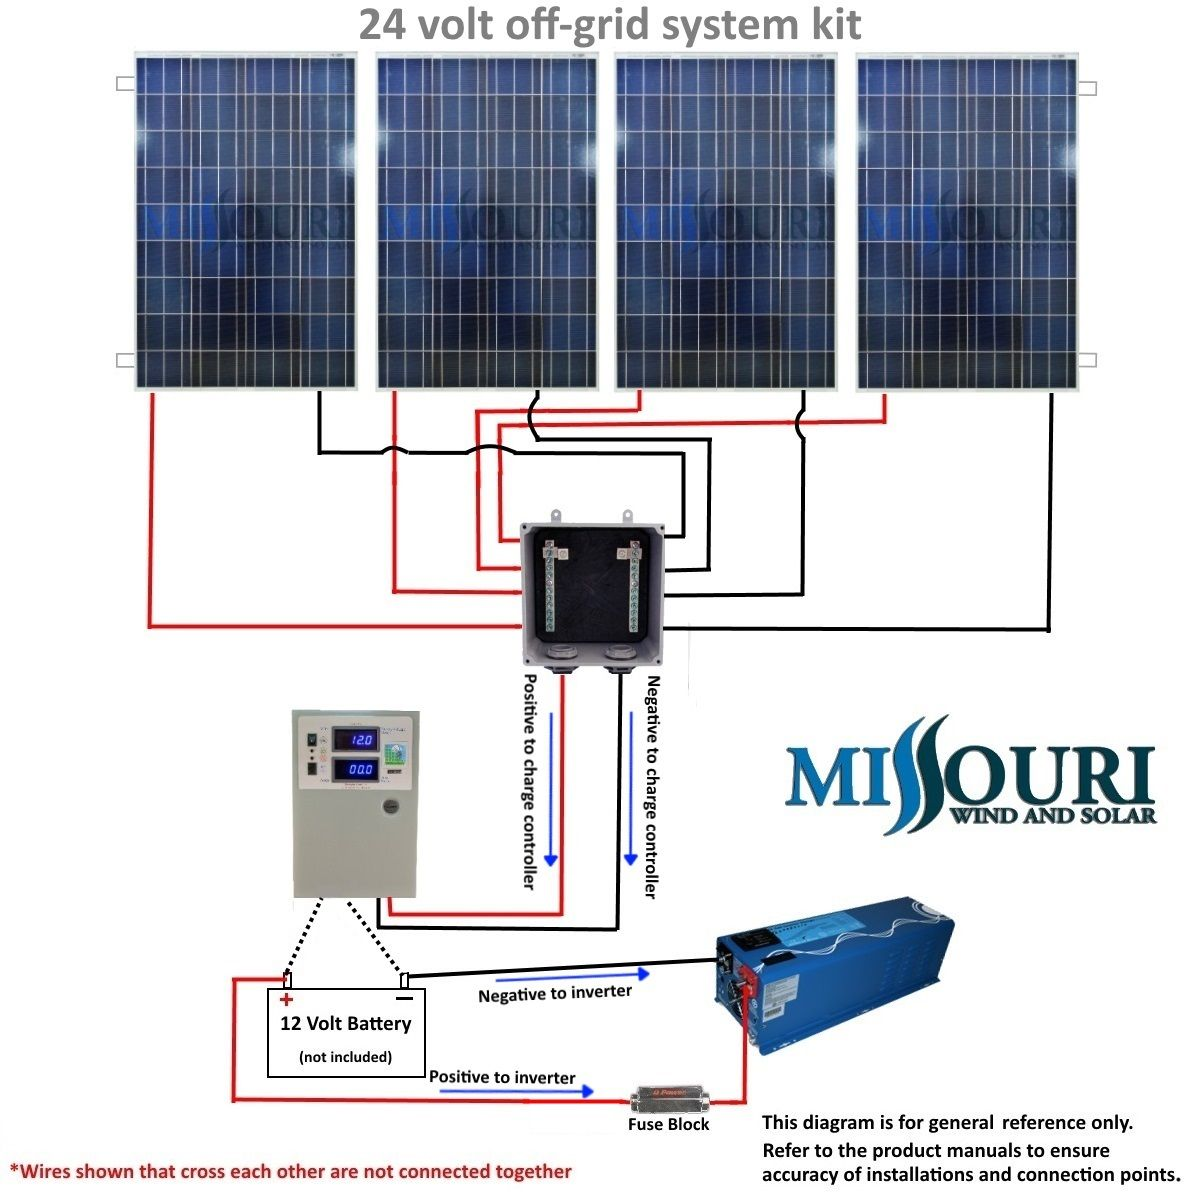 Off Grid Solar Wiring Diagram 24v Diy Enthusiasts Diagrams 1000 Watt 24 Volt Panel Kit Techno Pinterest Rh Com Systems Schematic